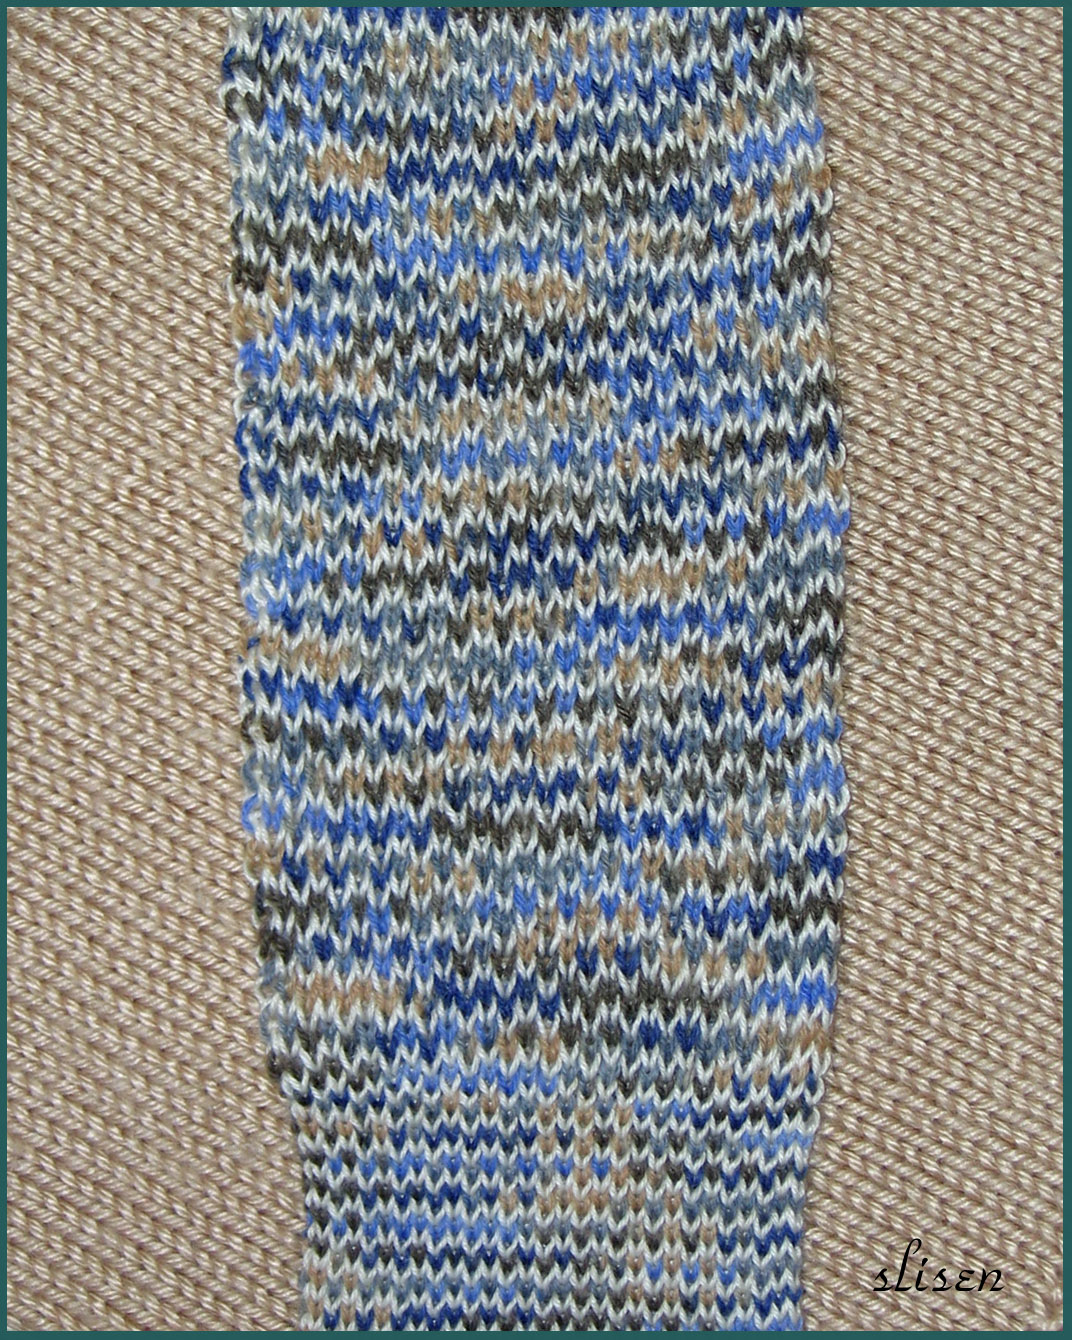 Knitting Vertical Stripes Different Colors : Slisen s happy place mitten color double bed jacquard